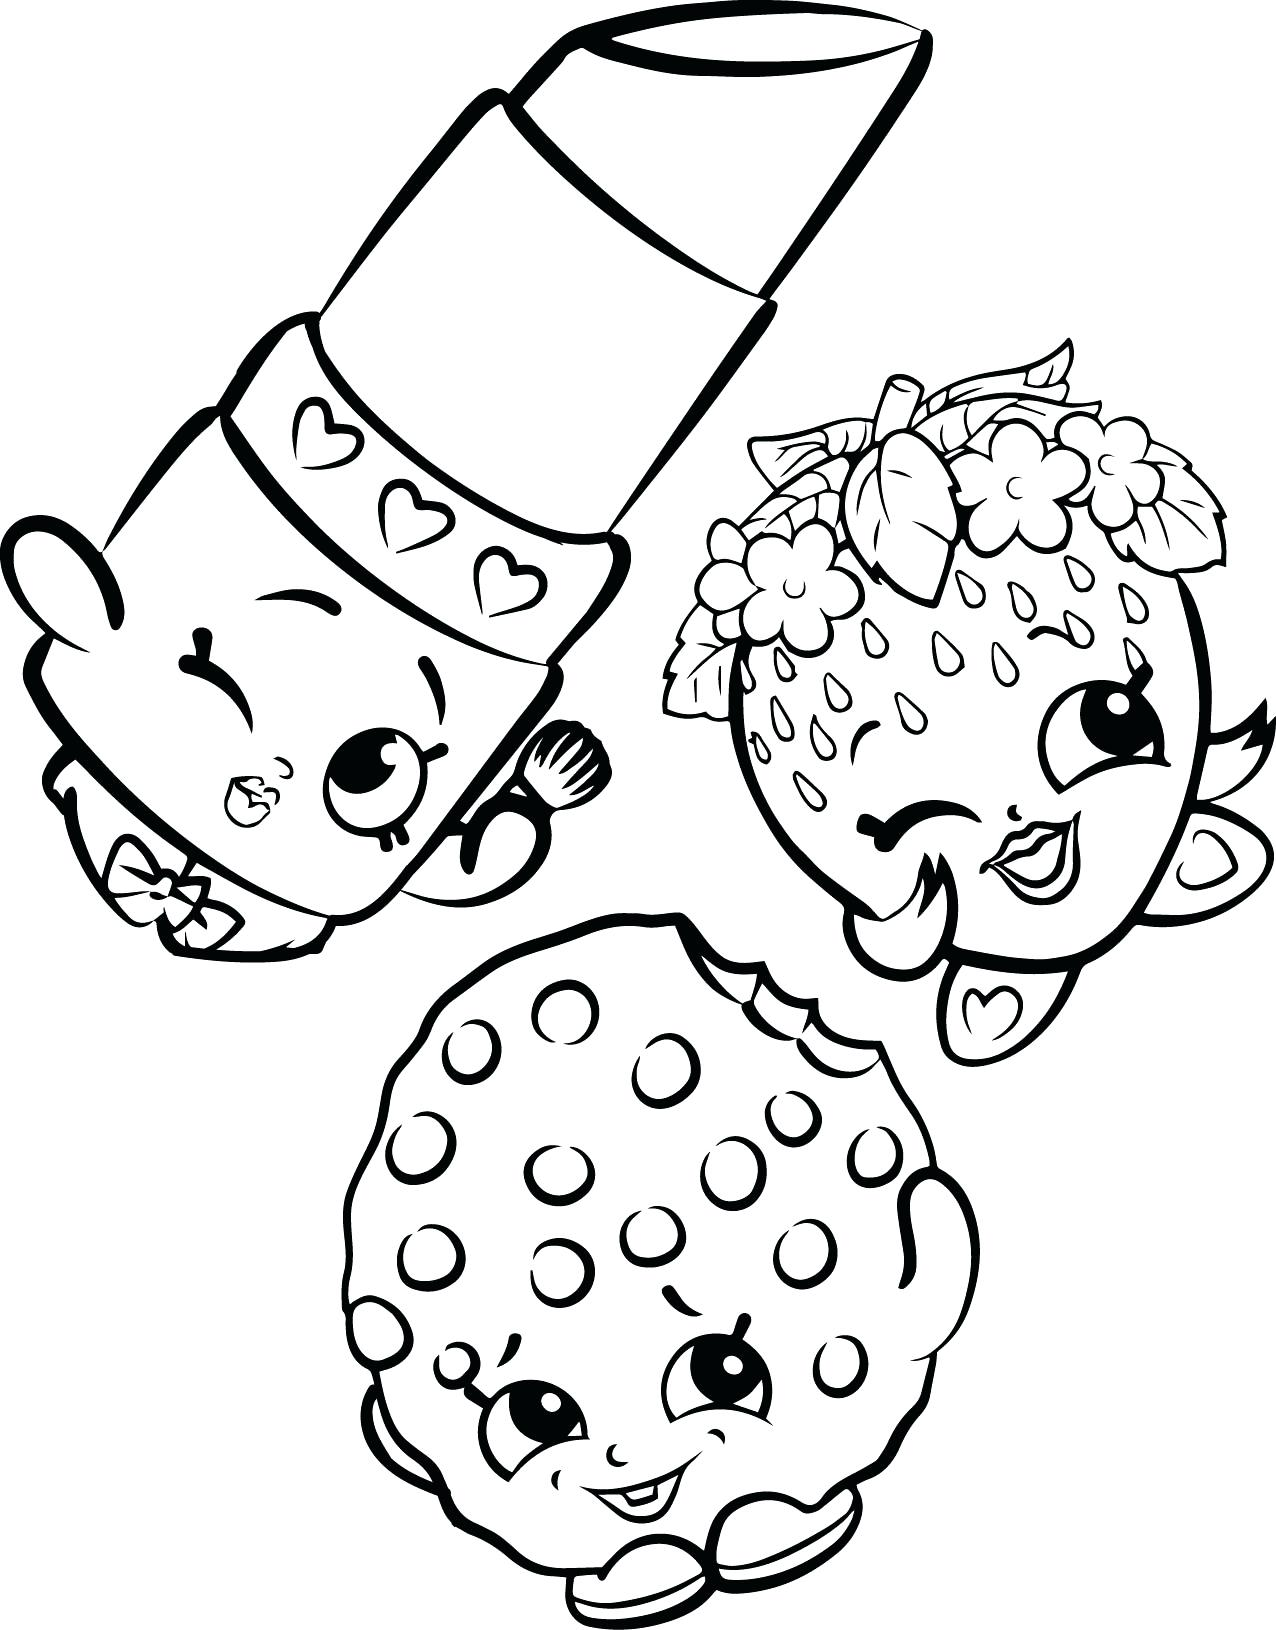 1276x1630 printable Lips Coloring Pages Printable Lippy Page Download 4